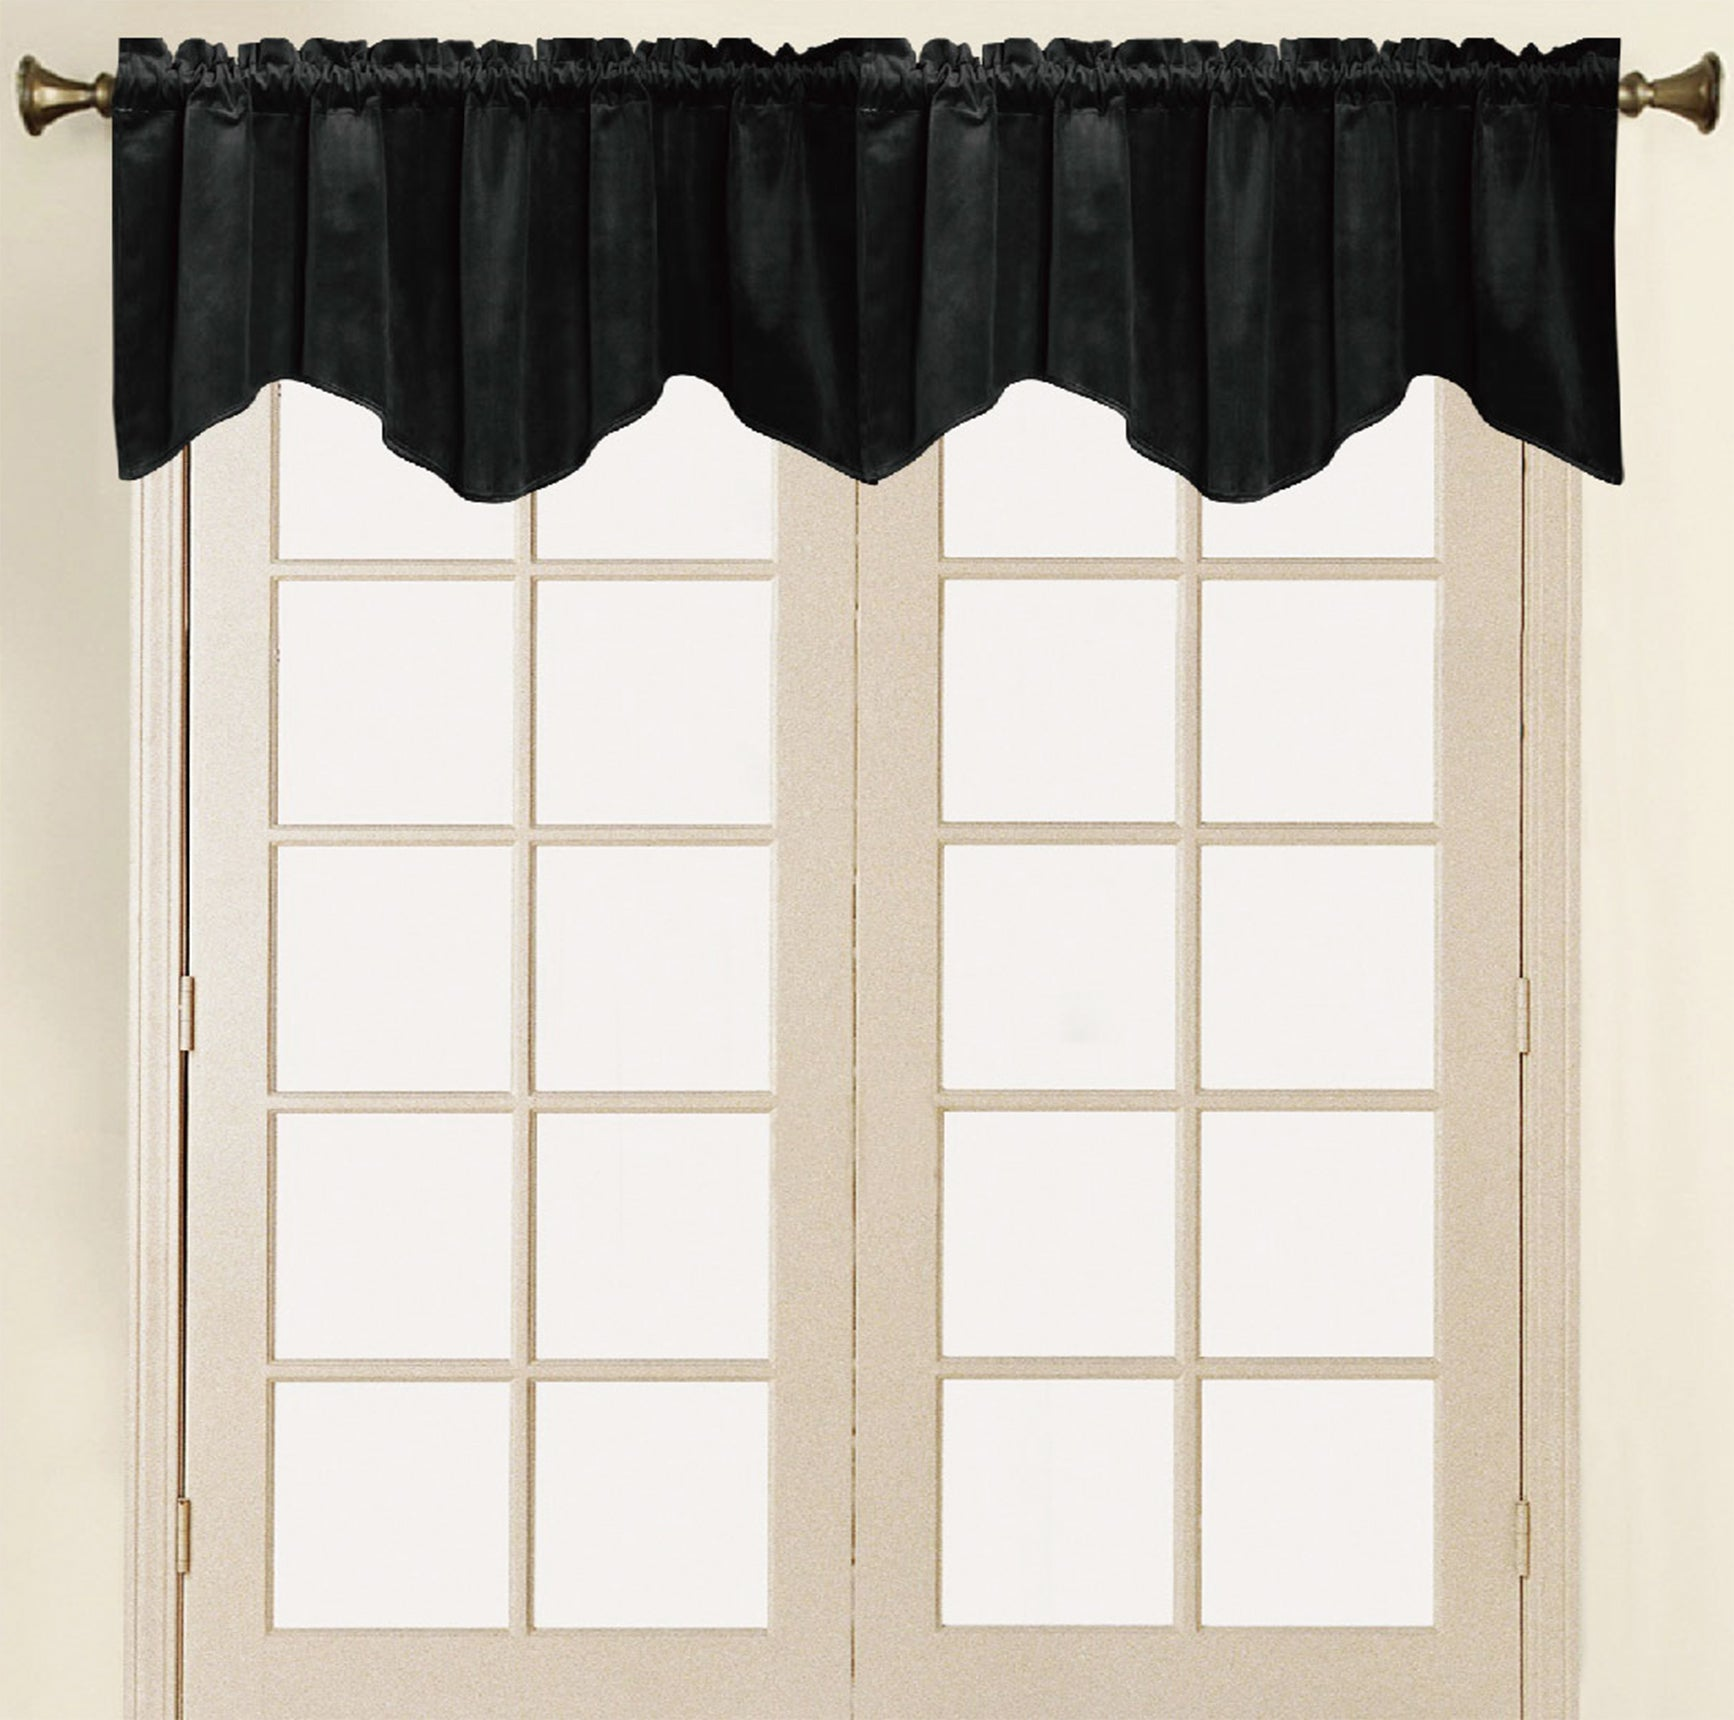 Vera Cruz Velvet Rod Pocket Valance - Valance 052x017 Black C41276- Marburn Curtains